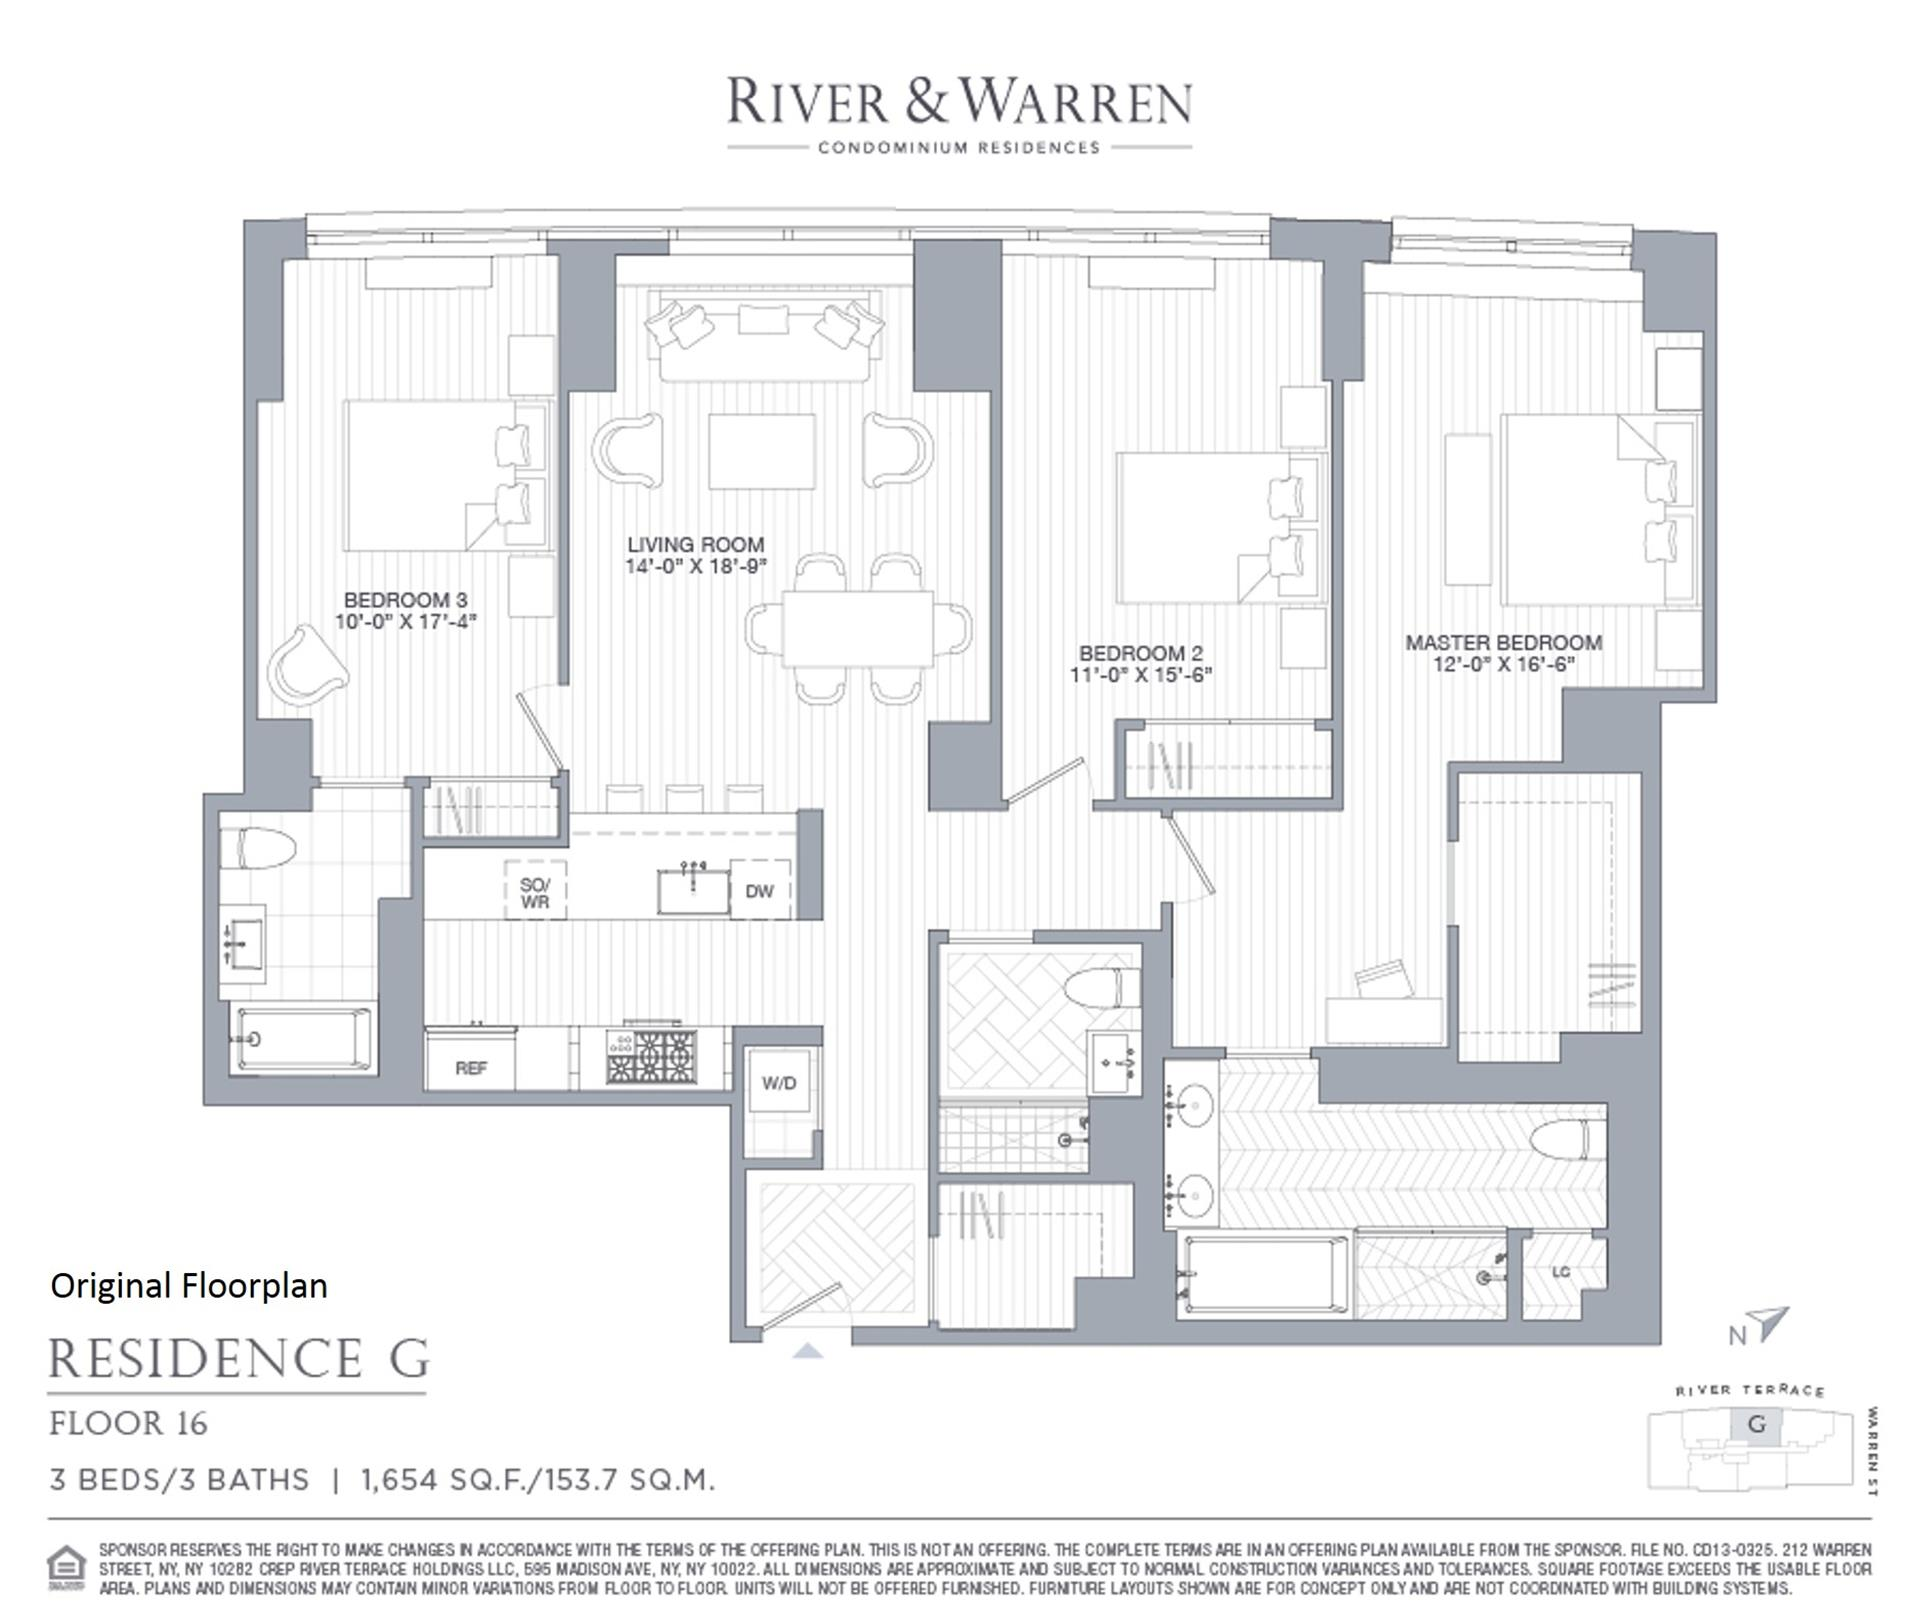 Floor plan of River & Warren, 212 Warren Street, 16G - Battery Park City, New York